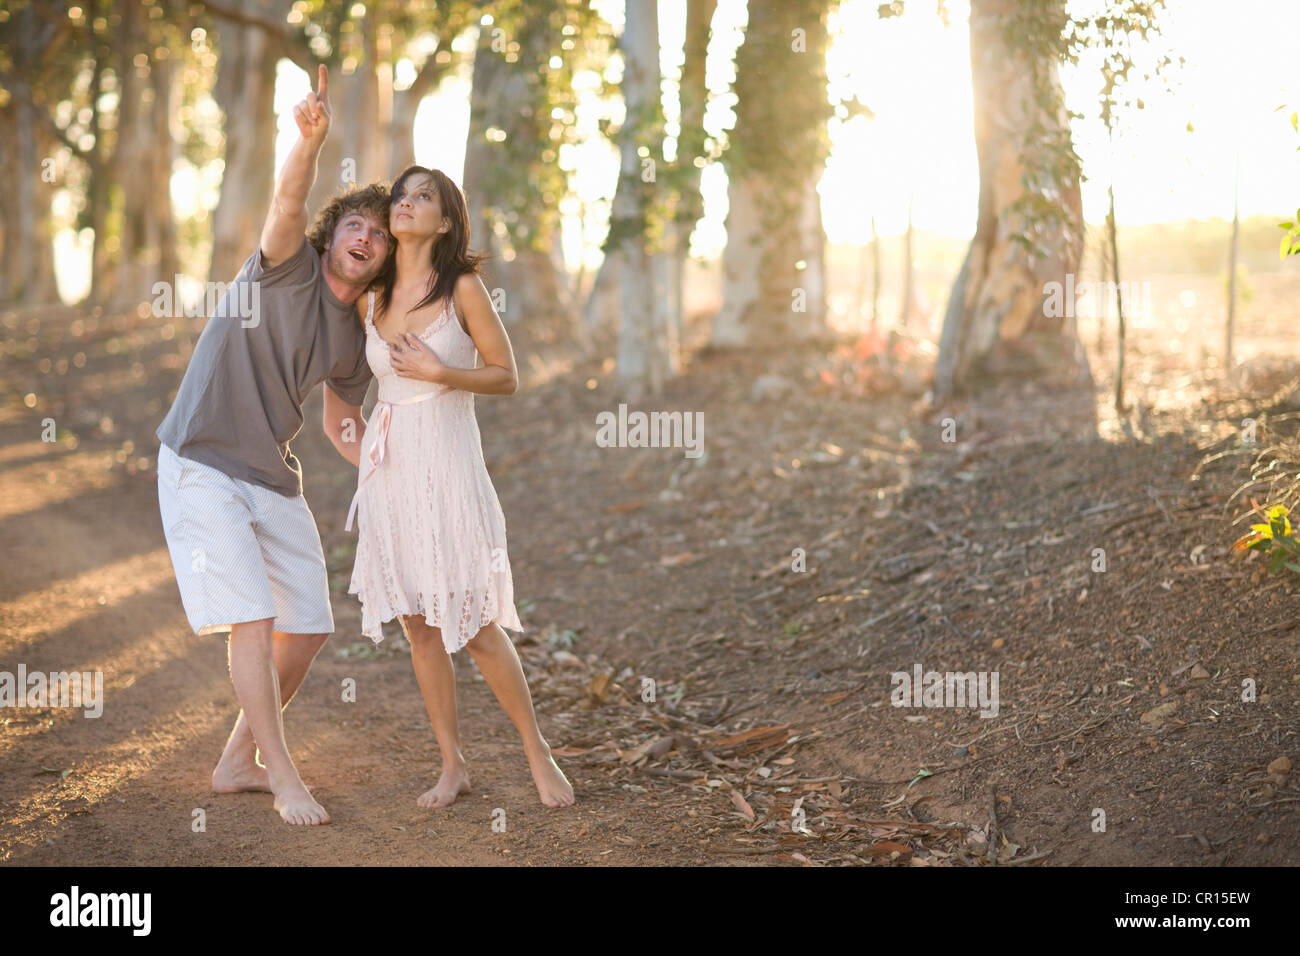 Couple walking together on dirt road - Stock Image